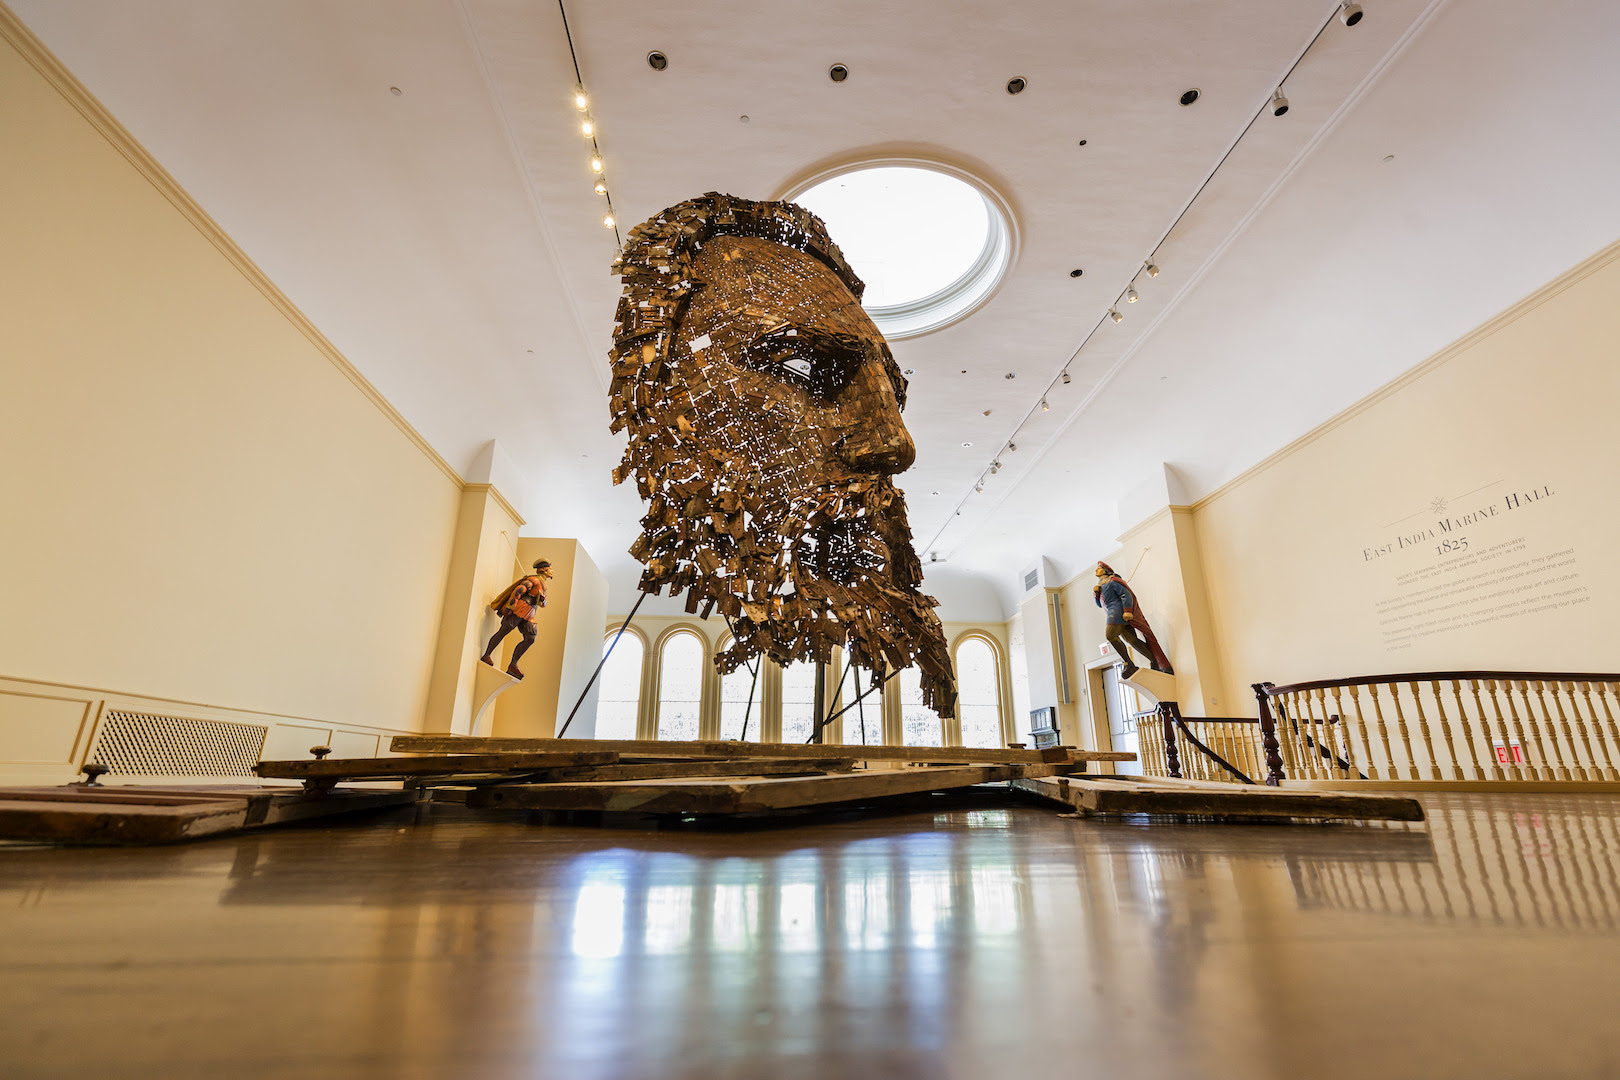 Installation image of Yoan Capote, Immanence, 2015. © Peabody Essex Museum. Photography by Ken Sawyer.